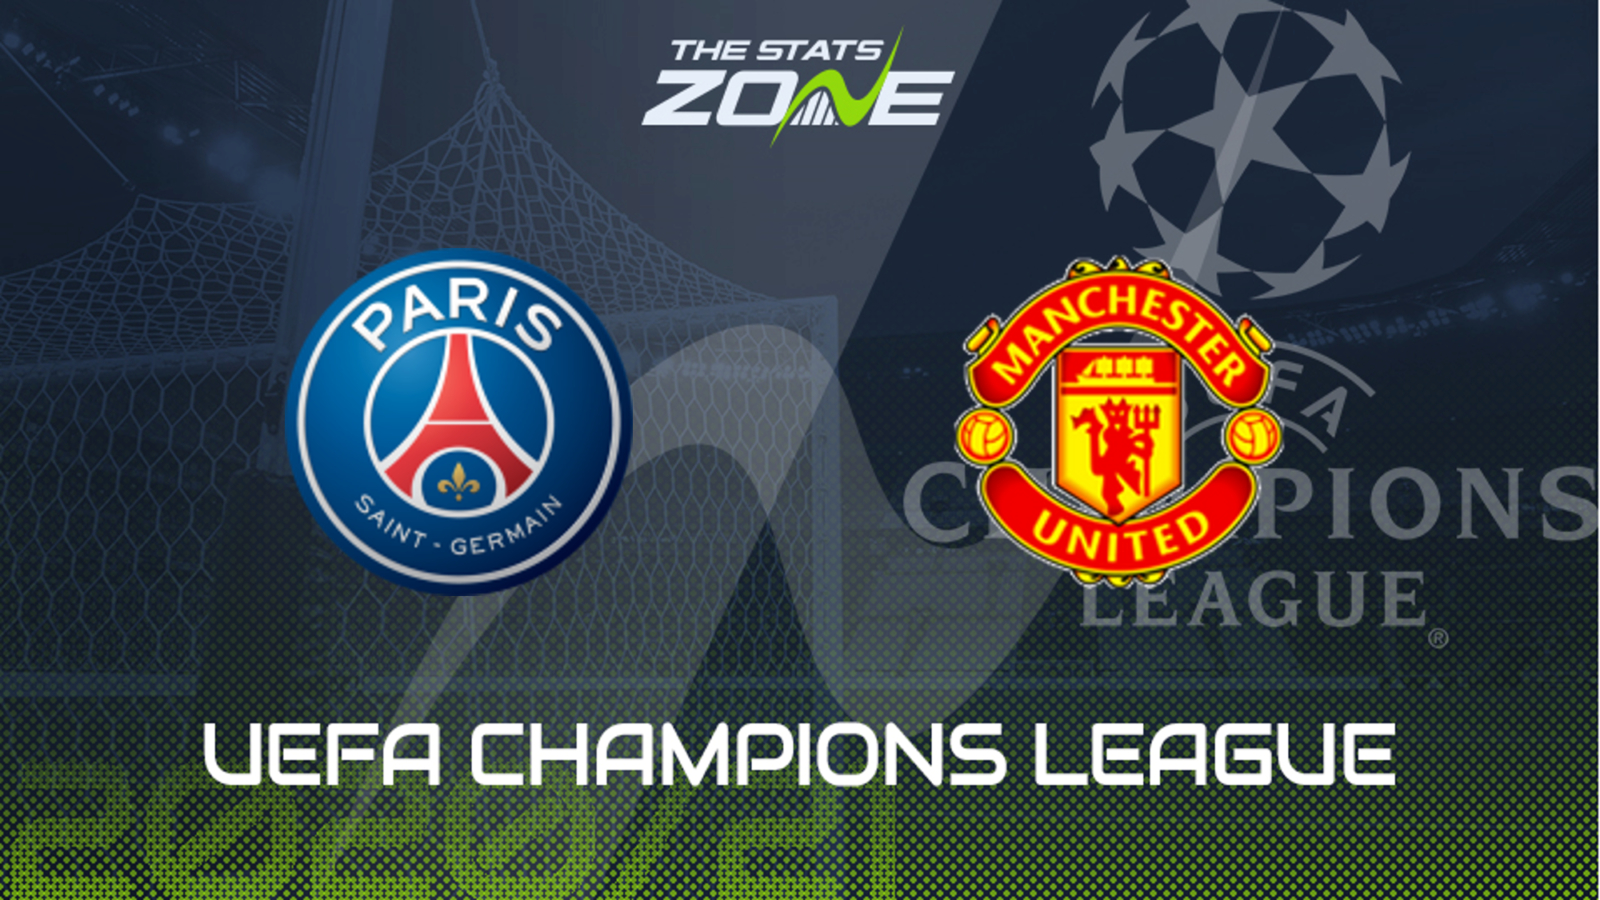 2020 21 Uefa Champions League Psg Vs Man Utd Preview Prediction The Stats Zone